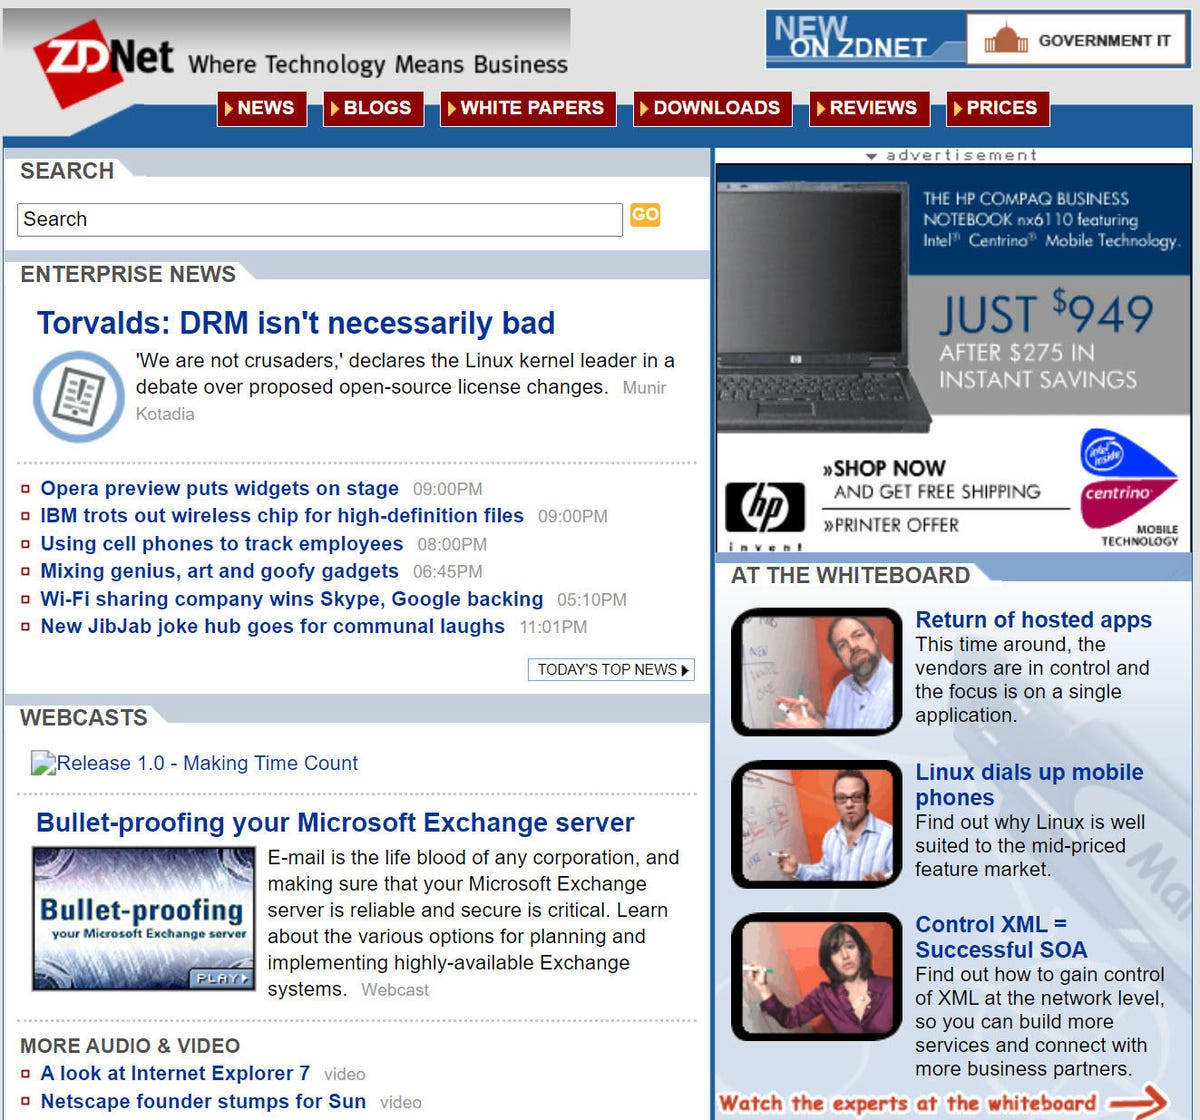 zdnet-home-page-february-2006.jpg